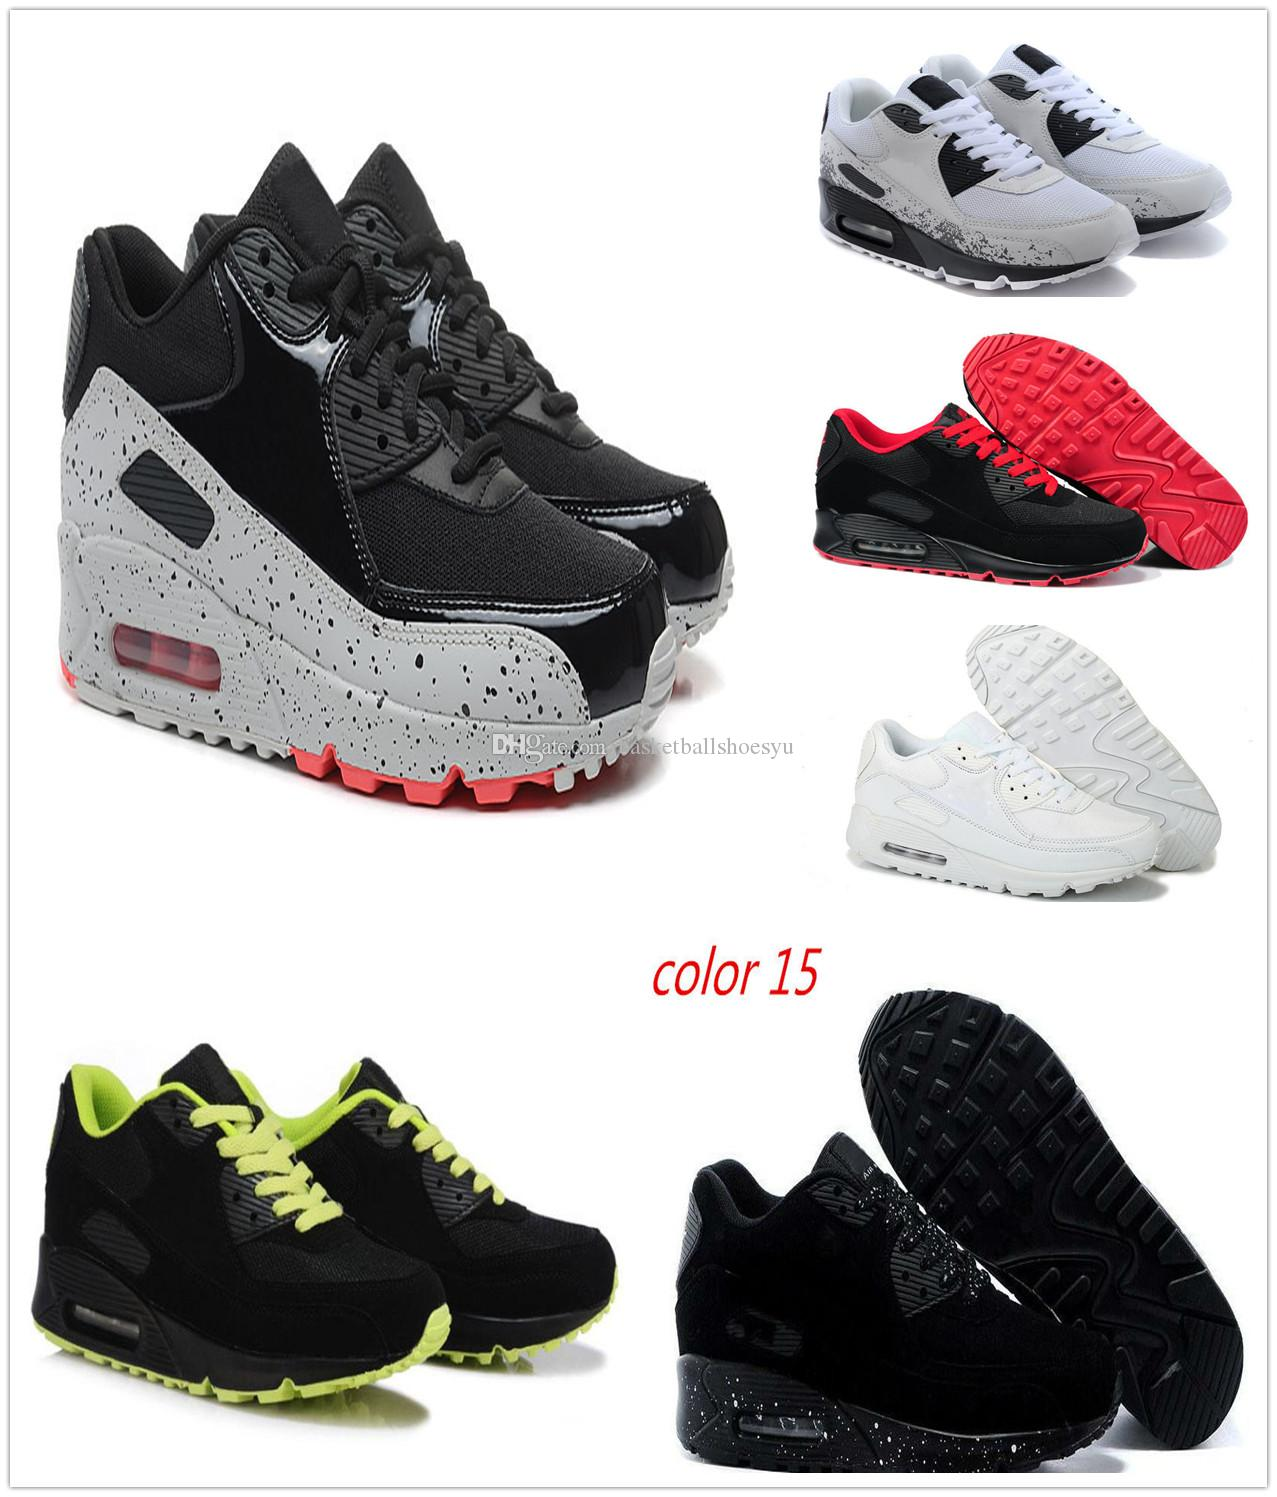 Hot Sale Sport Sneakers Shoes Classic Vapormax 97 Men and women Shoes Black gold white Sports Trainer air Cushion Mesh Surface Running shoes buy cheap countdown package sale low price fee shipping free shipping marketable xkeM4iKq